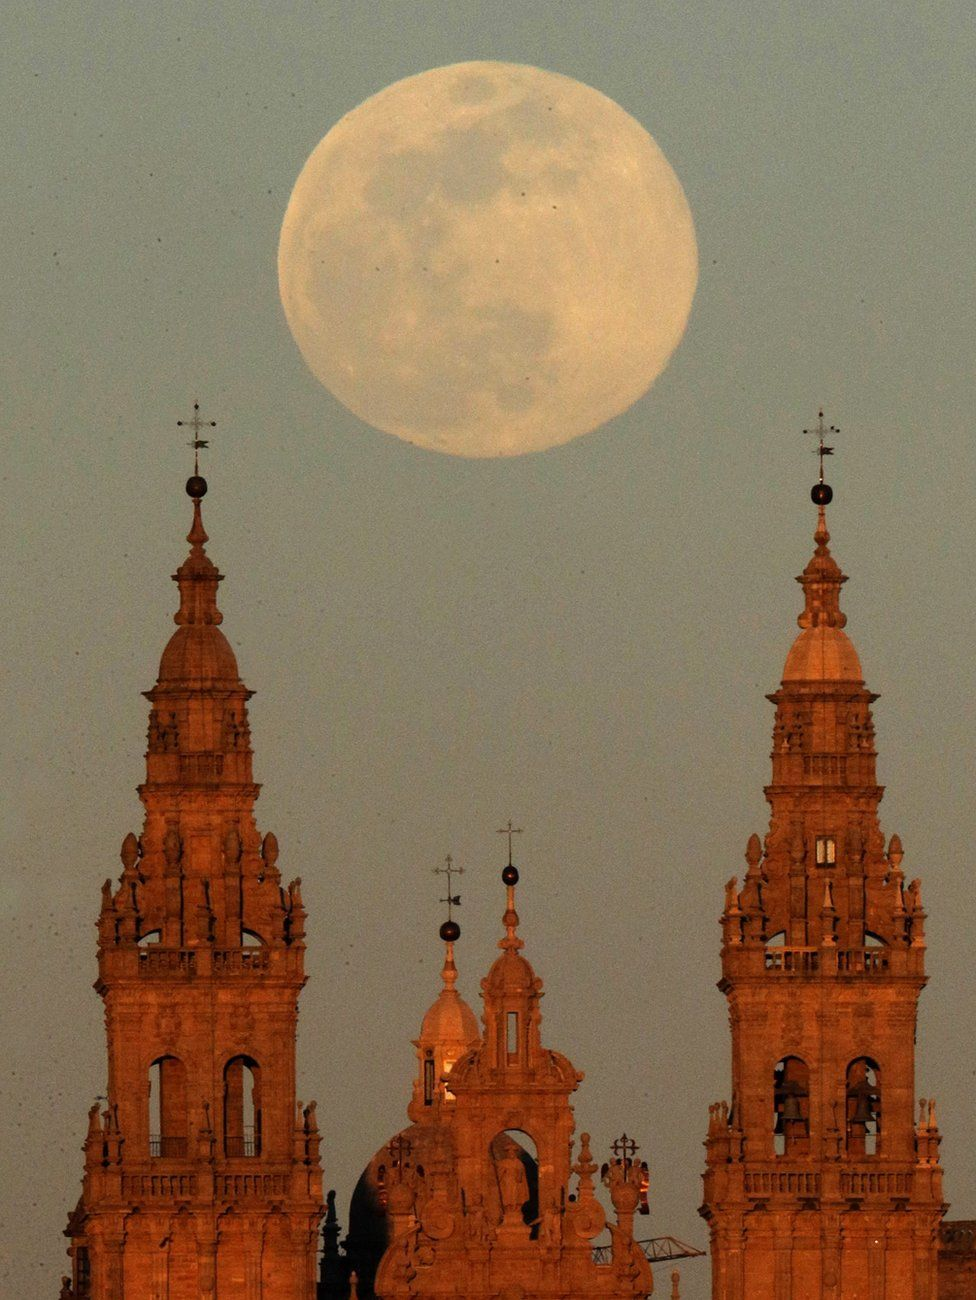 A view of the supermoon over the Santiago de Compostela cathedral in Spain